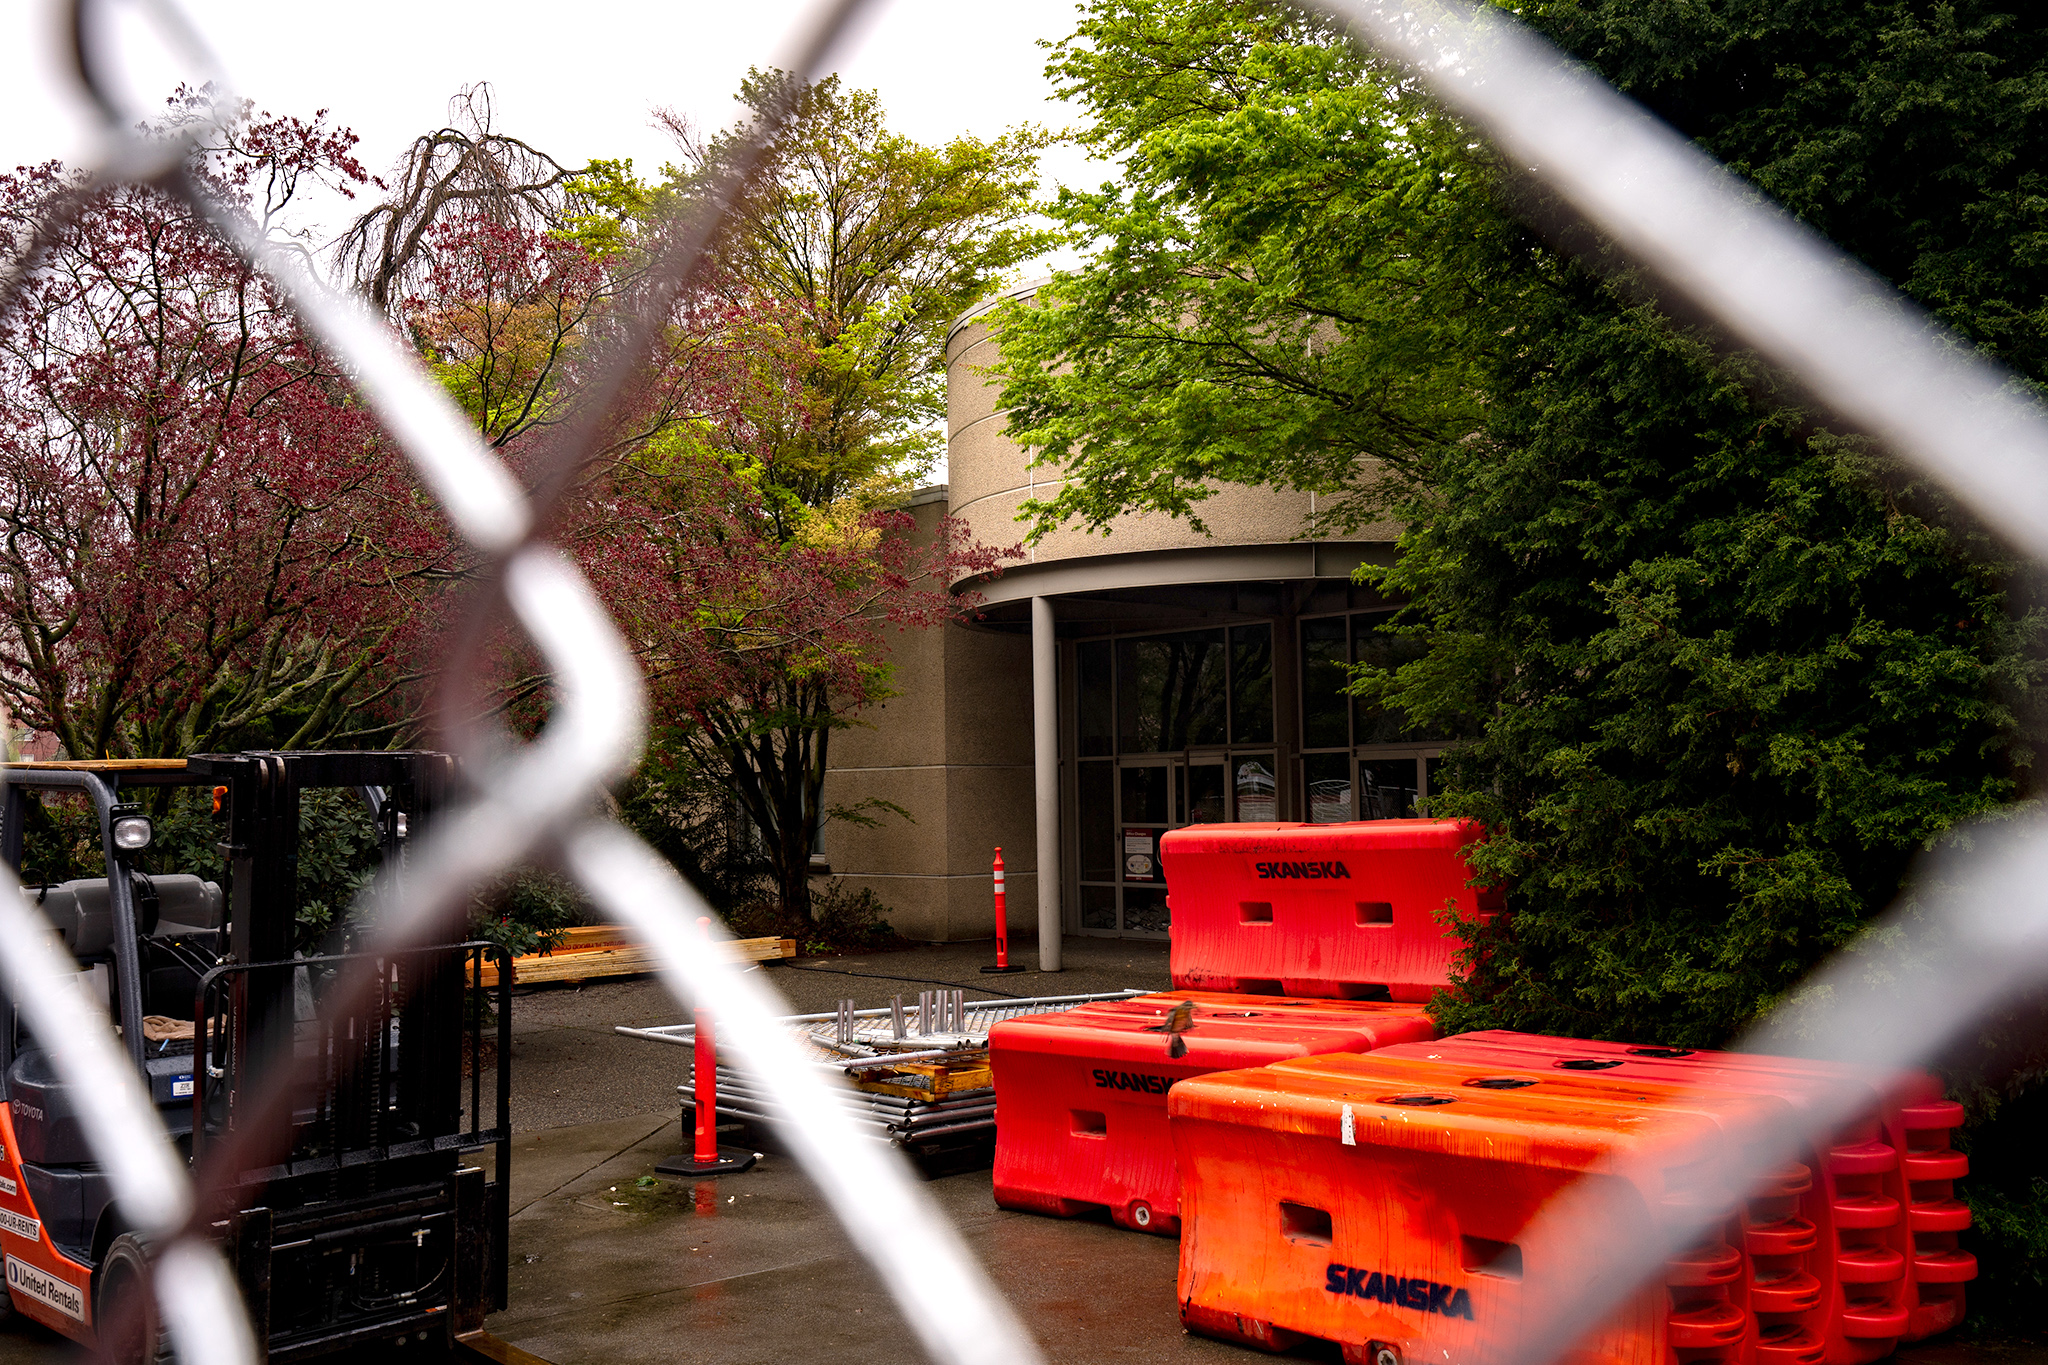 The university services building is now fenced off with demolition trailers set to arrive April 13.